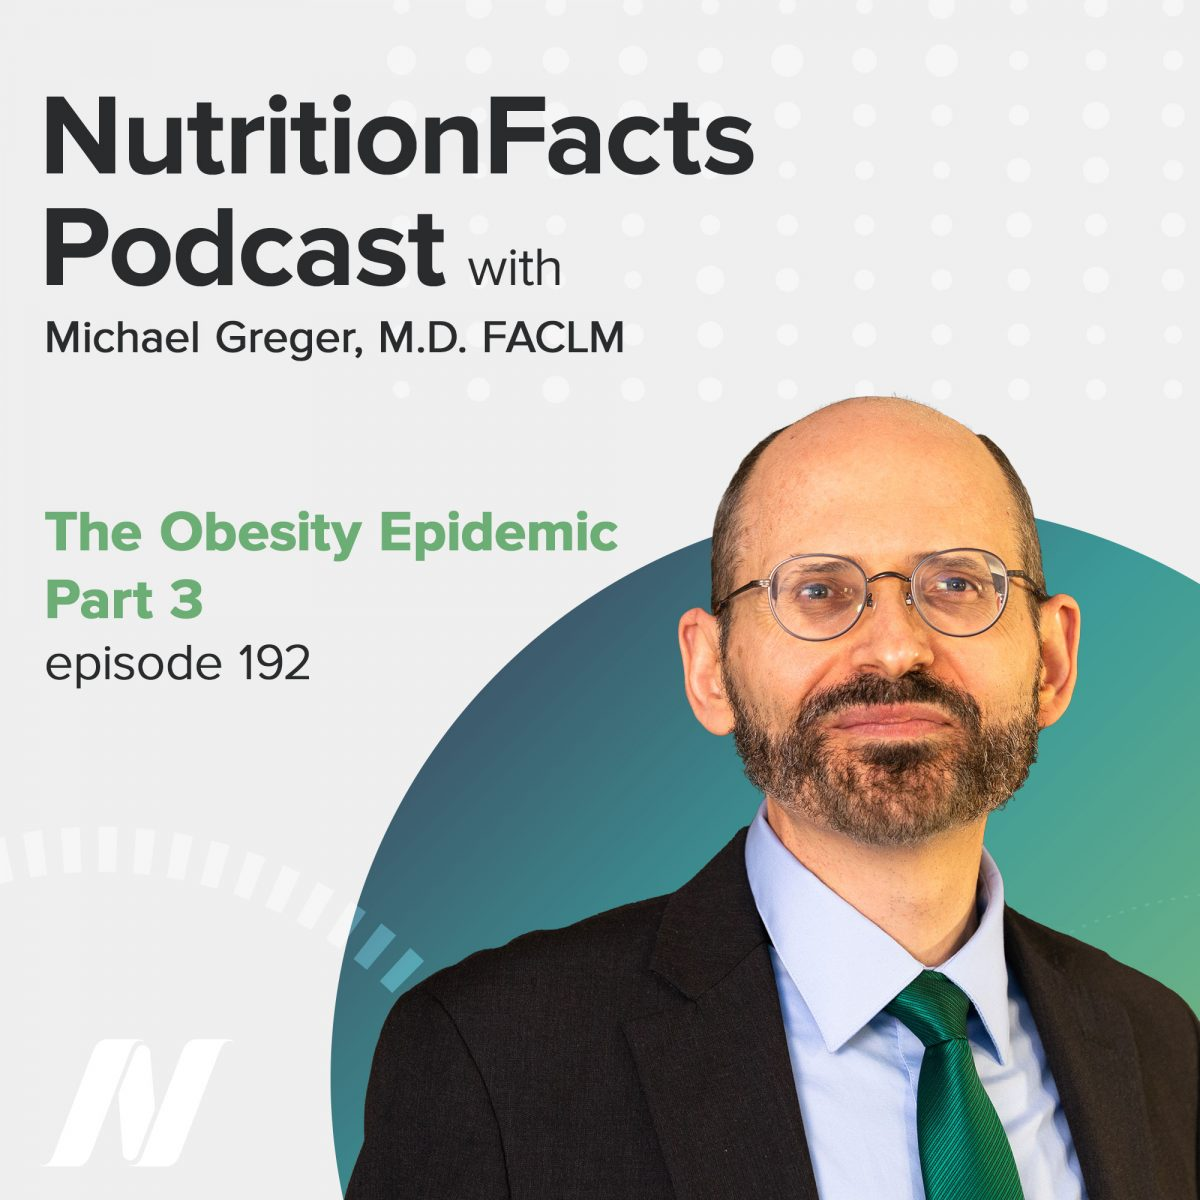 The Obesity Epidemic – Part 3 | NutritionFacts.org